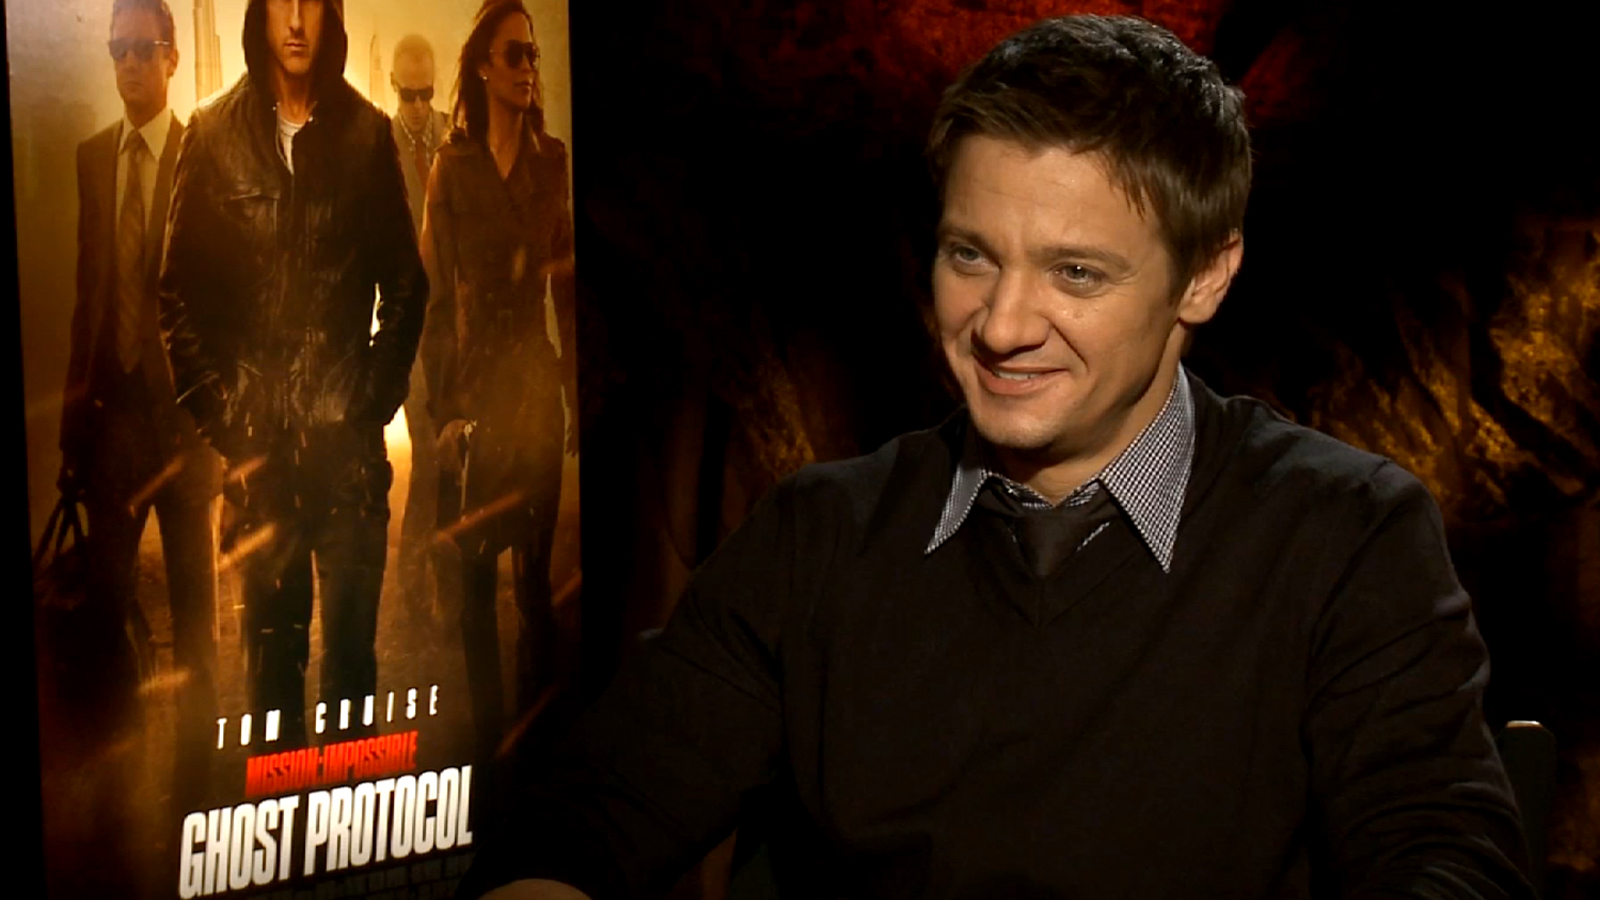 Jeremy Renner Tom Cruise Was A Great Mentor Champion Access